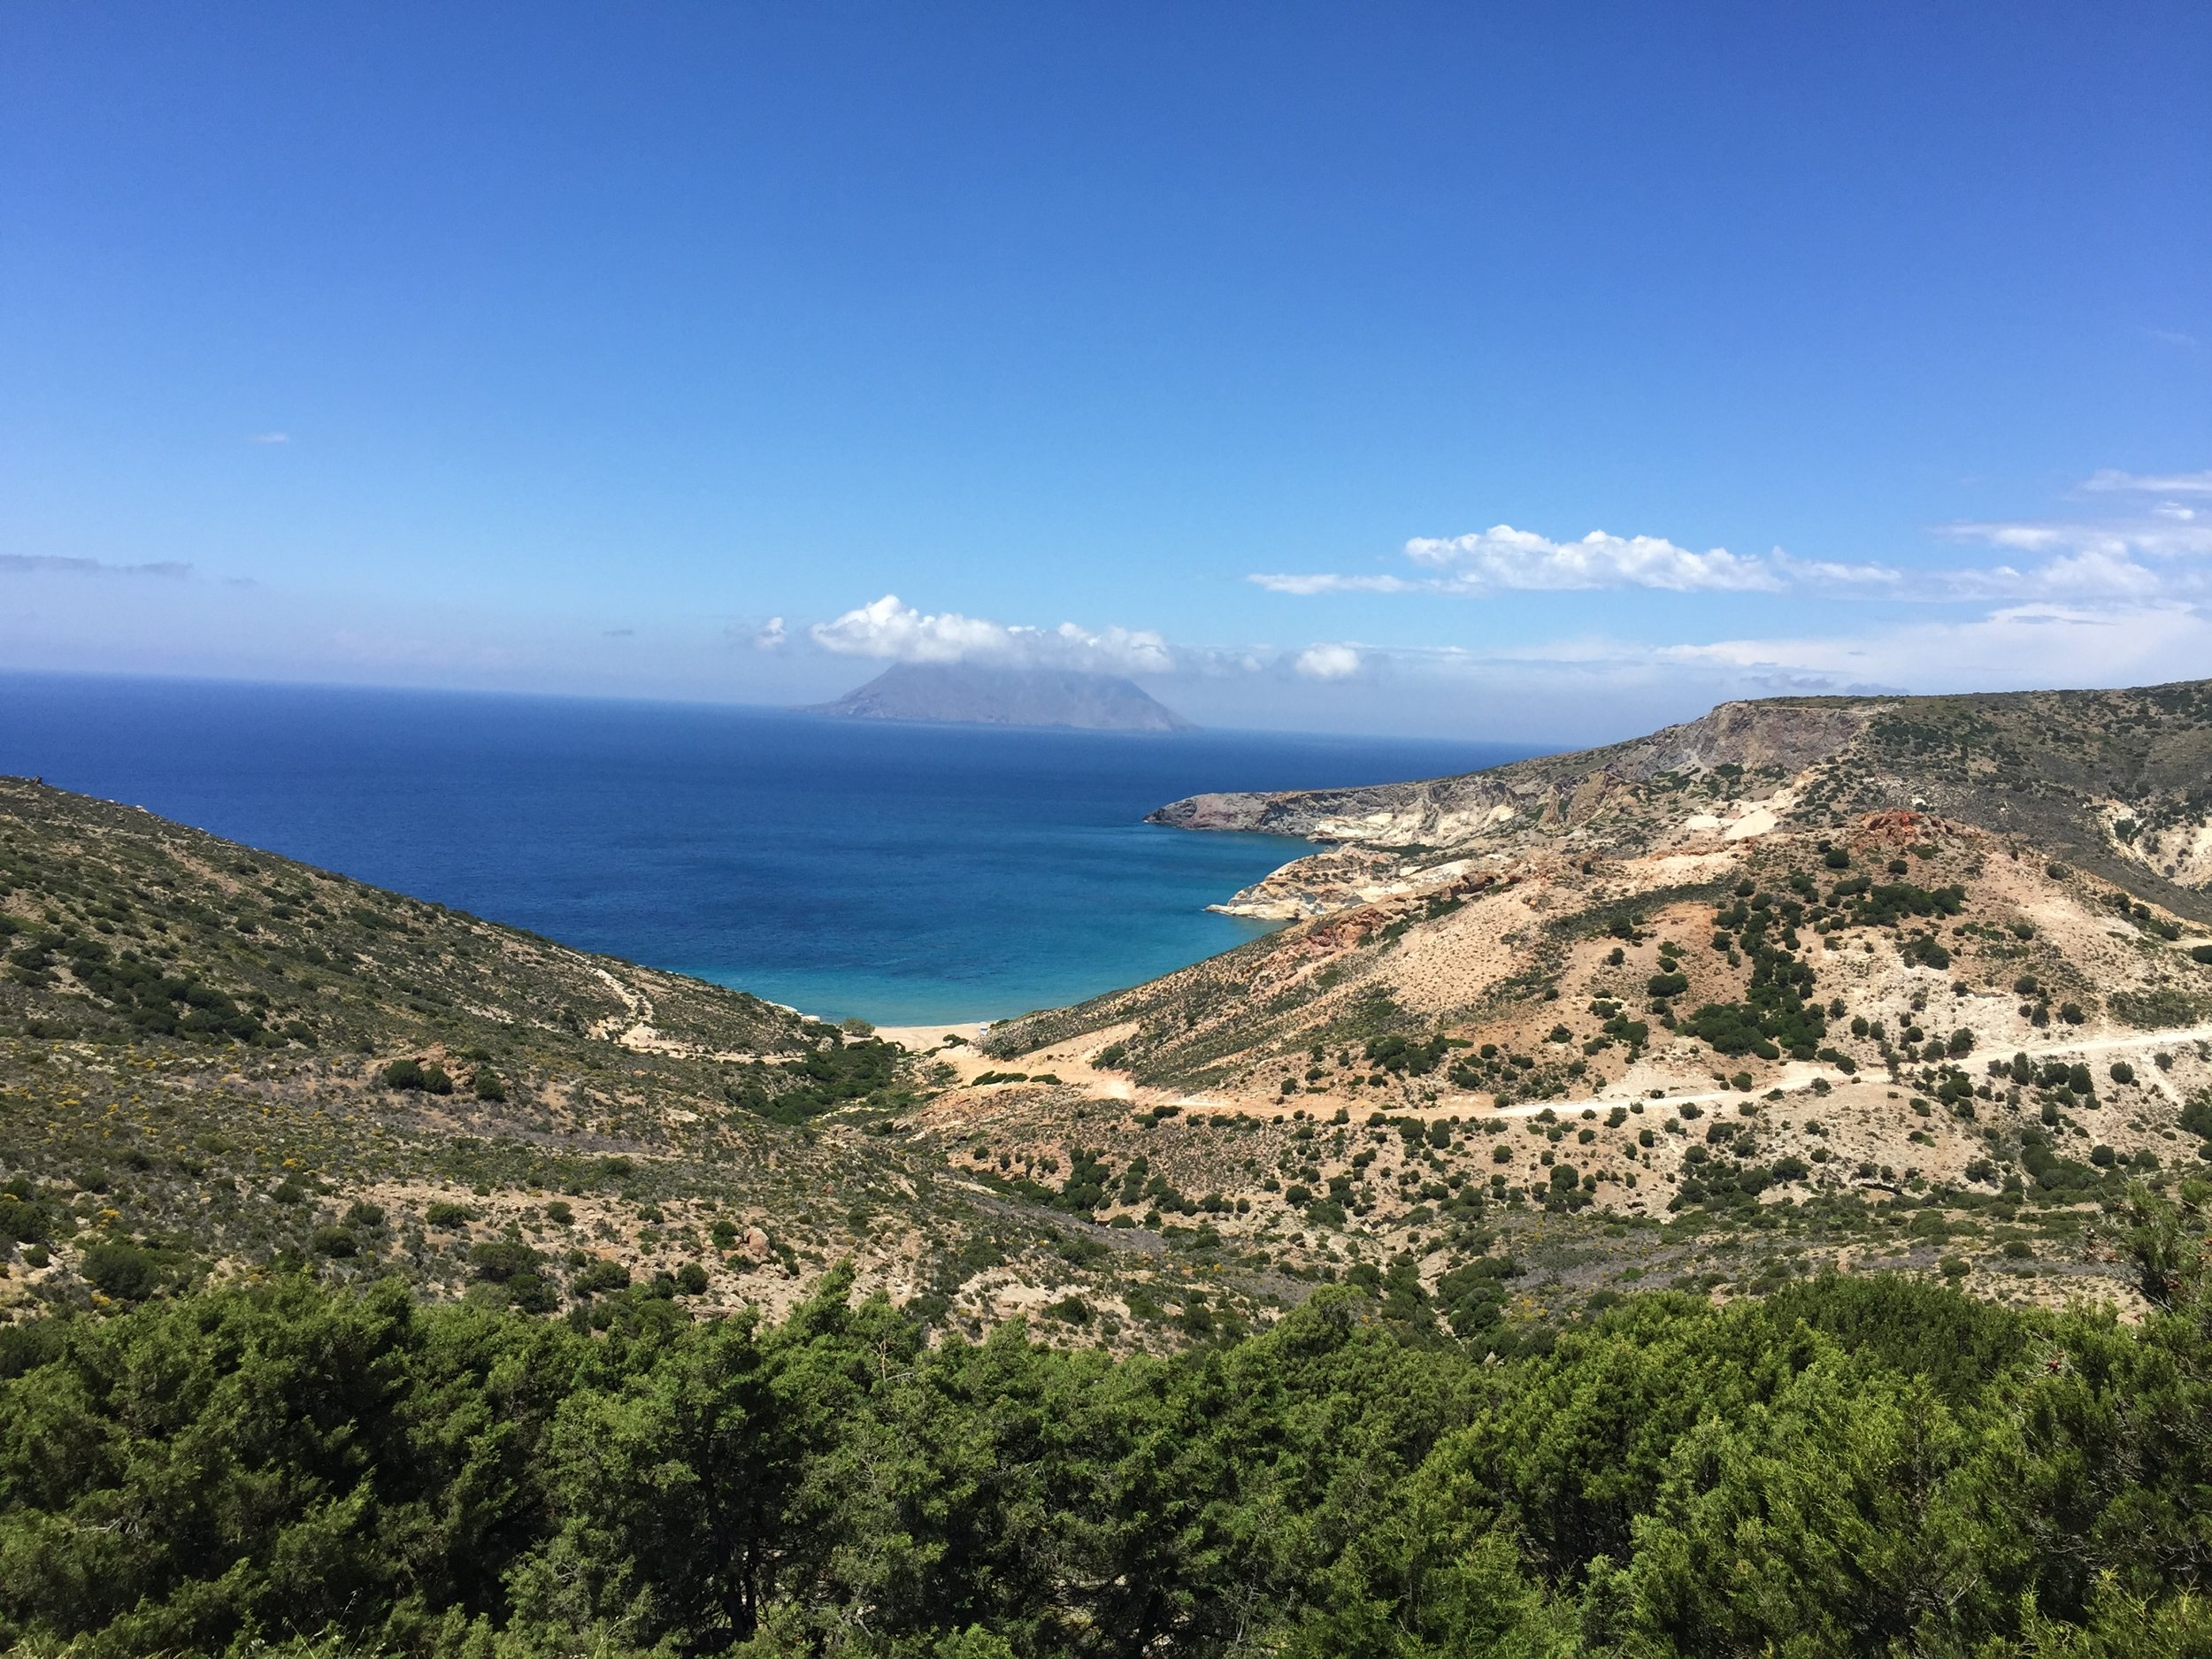 Views from the 'off grid' south west side of Milos: great for some peaceful hiking.